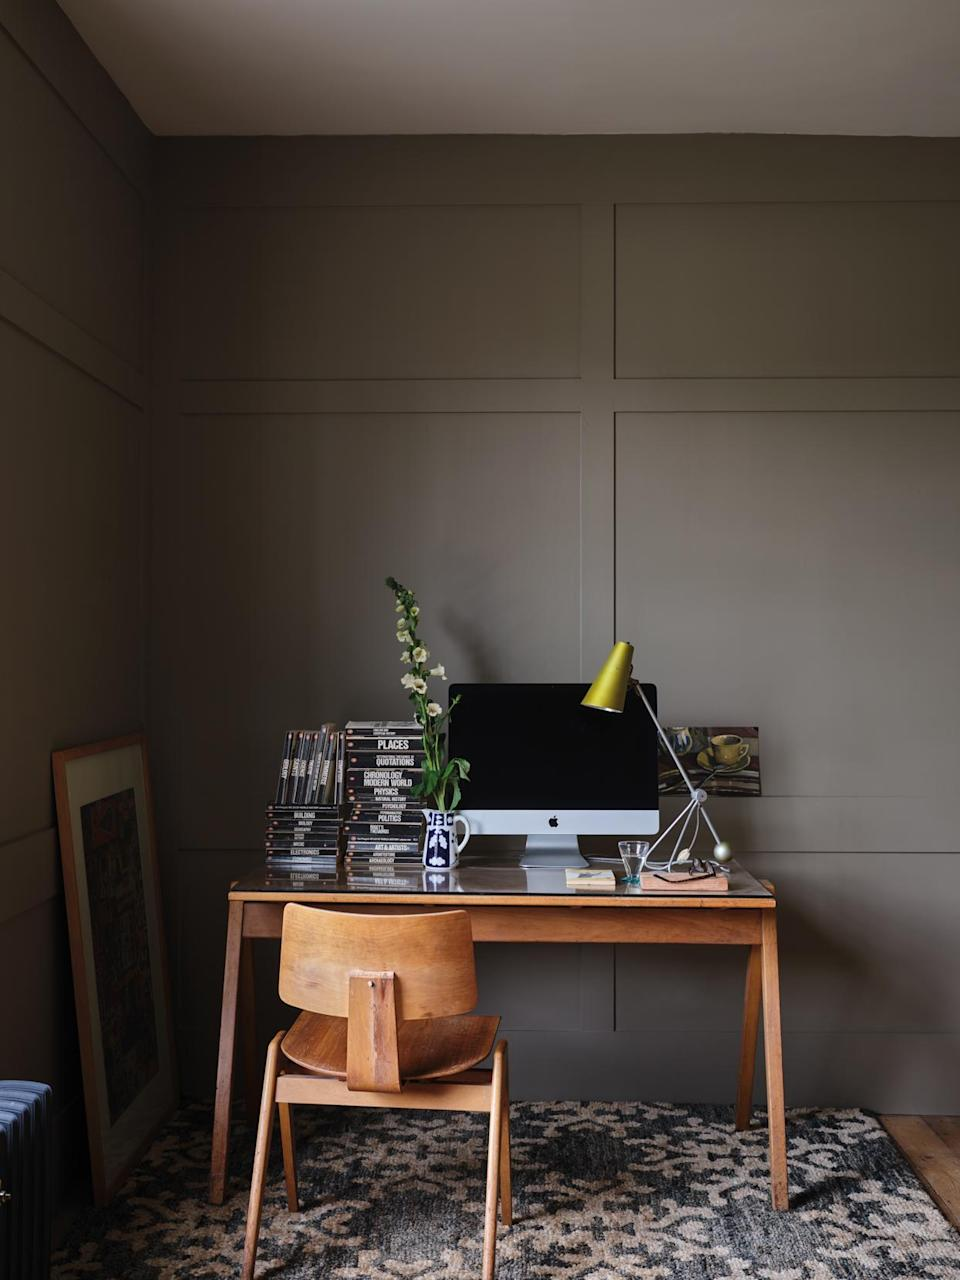 """<p>If you thought brown walls were boring, then it's time to think again. According to our experts, a warm brown-painted office can help you stay calm and focused while you work. """"Mid-brown tones, like <a href=""""https://www.farrow-ball.com/en-us/colour-by-nature/broccoli-brown"""" rel=""""nofollow noopener"""" target=""""_blank"""" data-ylk=""""slk:Broccoli Brown"""" class=""""link rapid-noclick-resp"""">Broccoli Brown</a>, are calming,"""" O'Donnell explains, """"and can focus the mind on the important tasks at hand.""""</p>"""